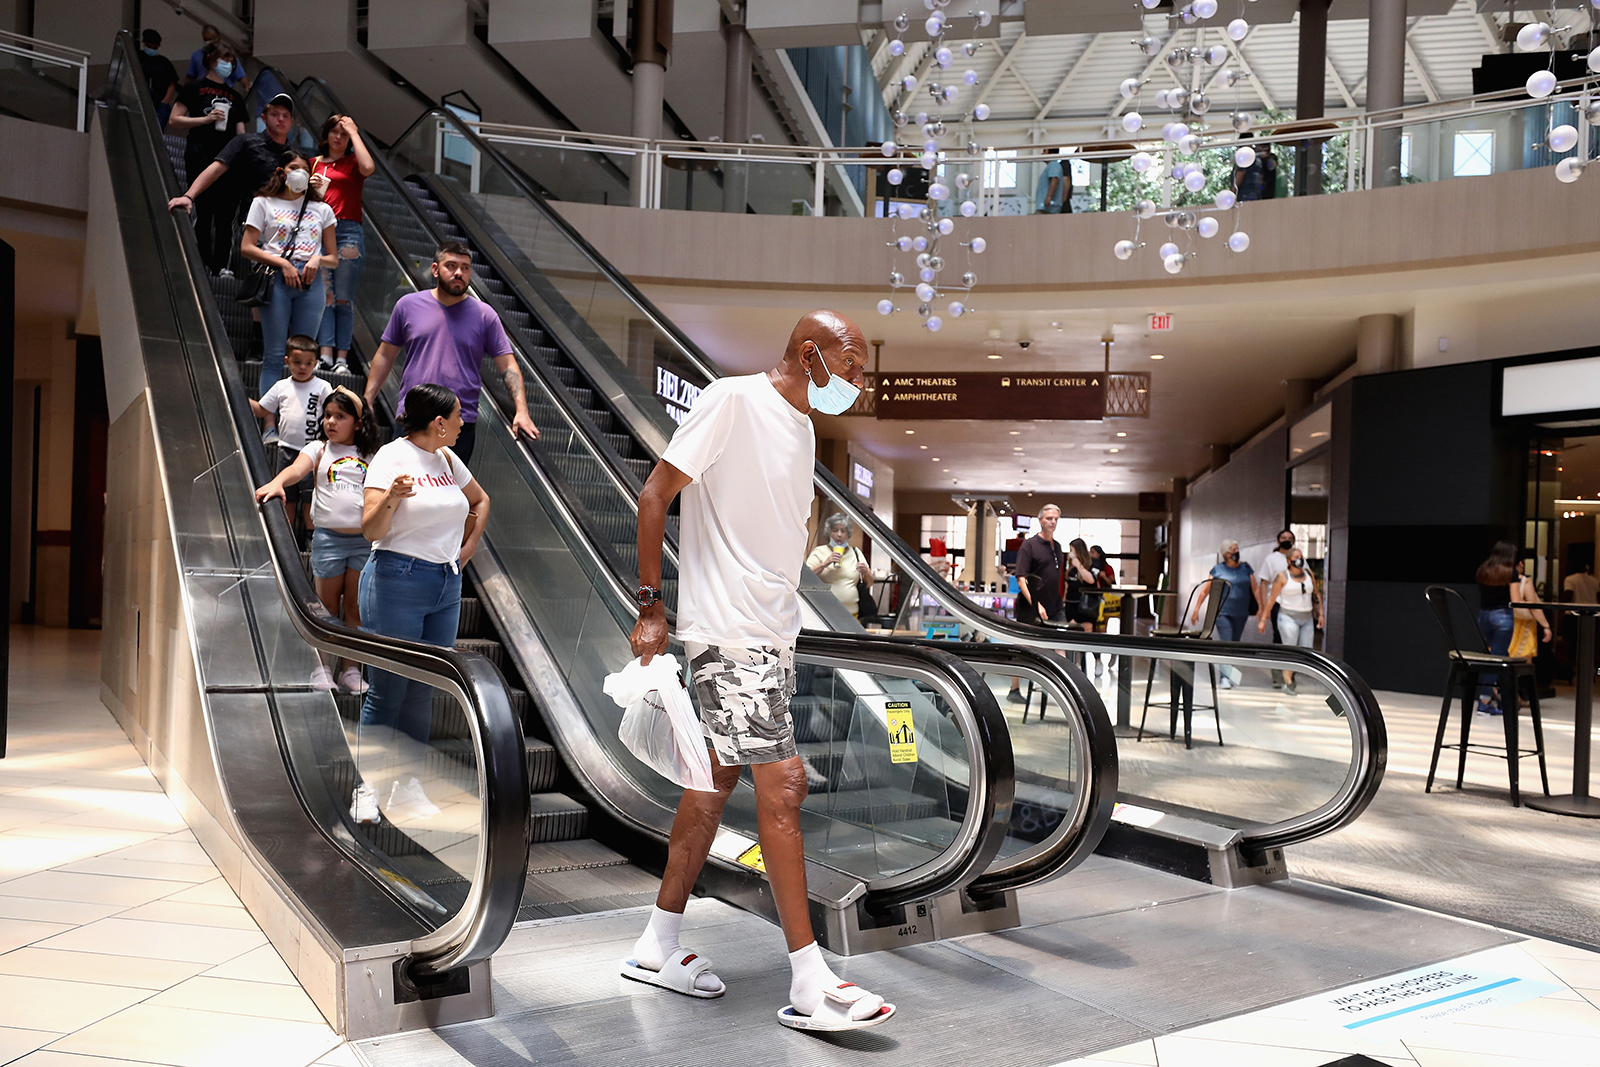 Shoppers exit an escalator as they return to retail shopping at the Arrowhead Towne Center on June 20, in Glendale, Arizona.